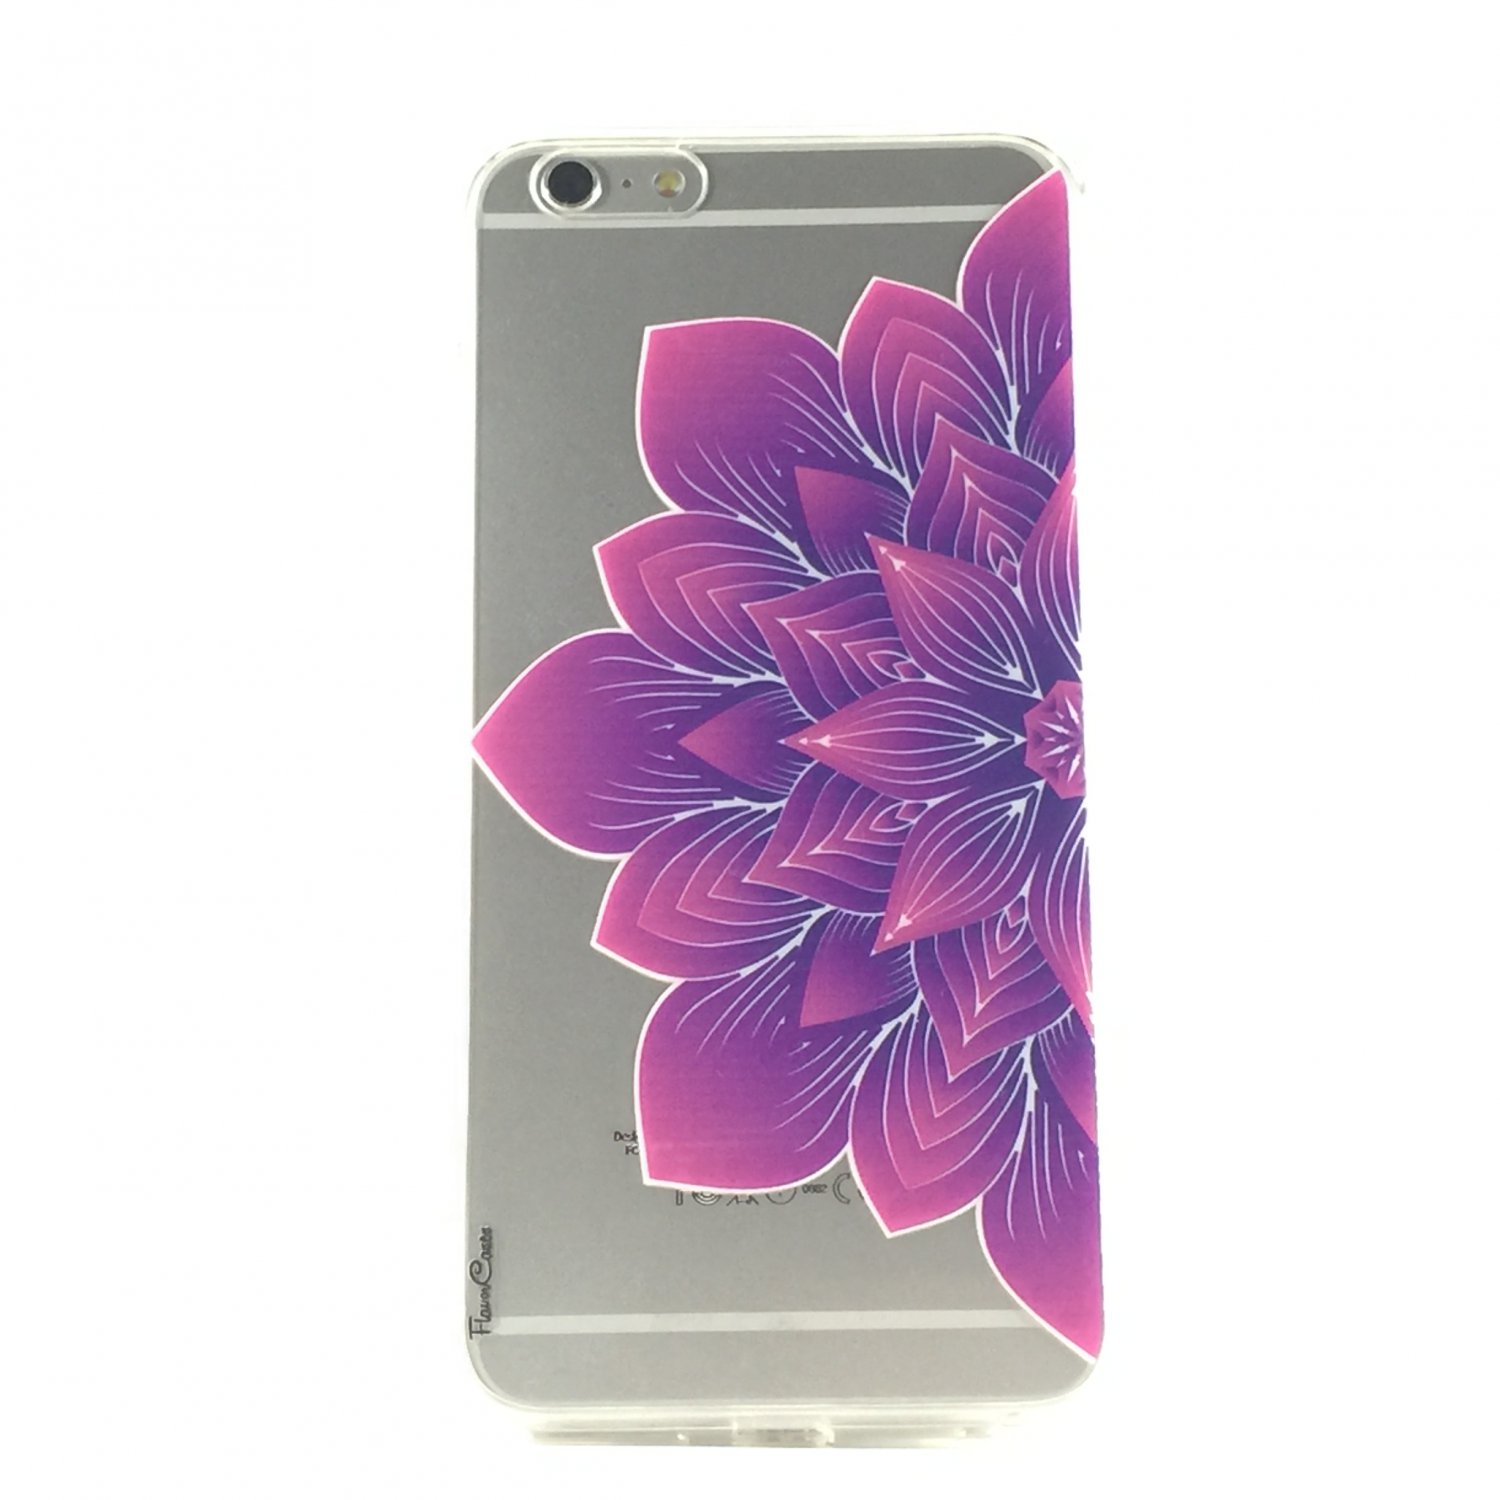 Meaning Of Life - New Floral Tribal Cell Phone Case iPhone 6 ip6